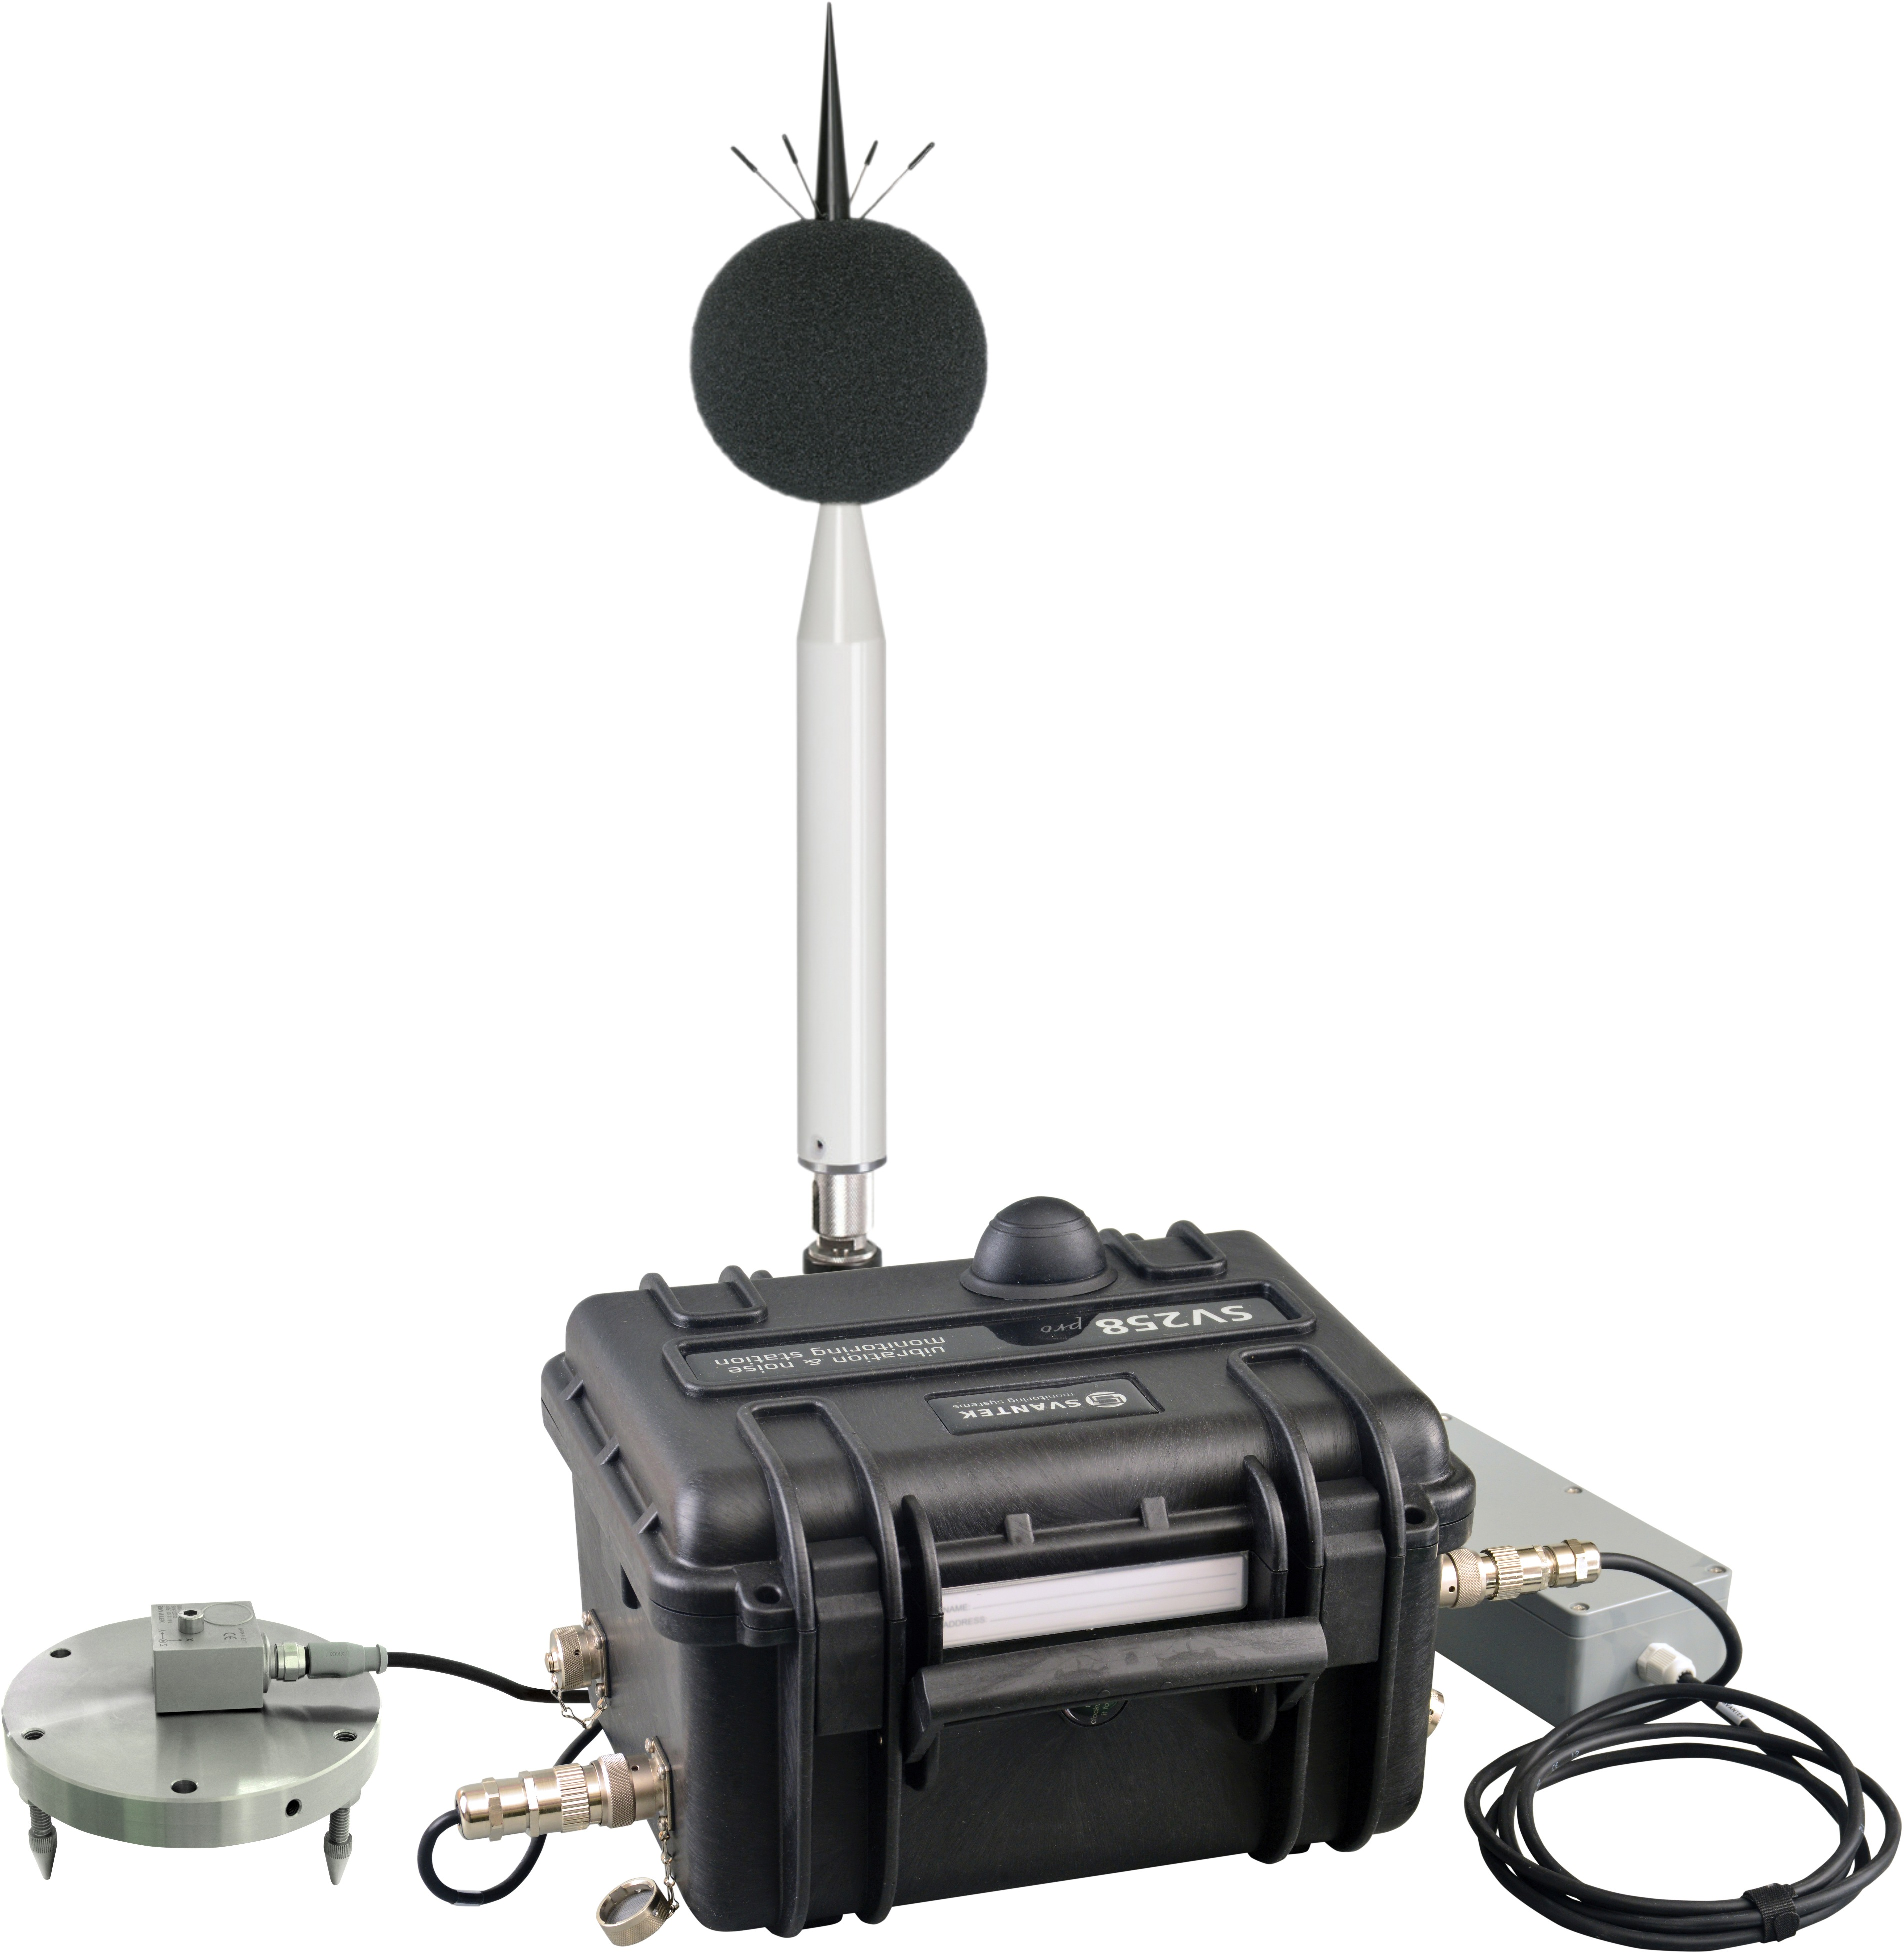 Outdoor noise and vibration monitoring station